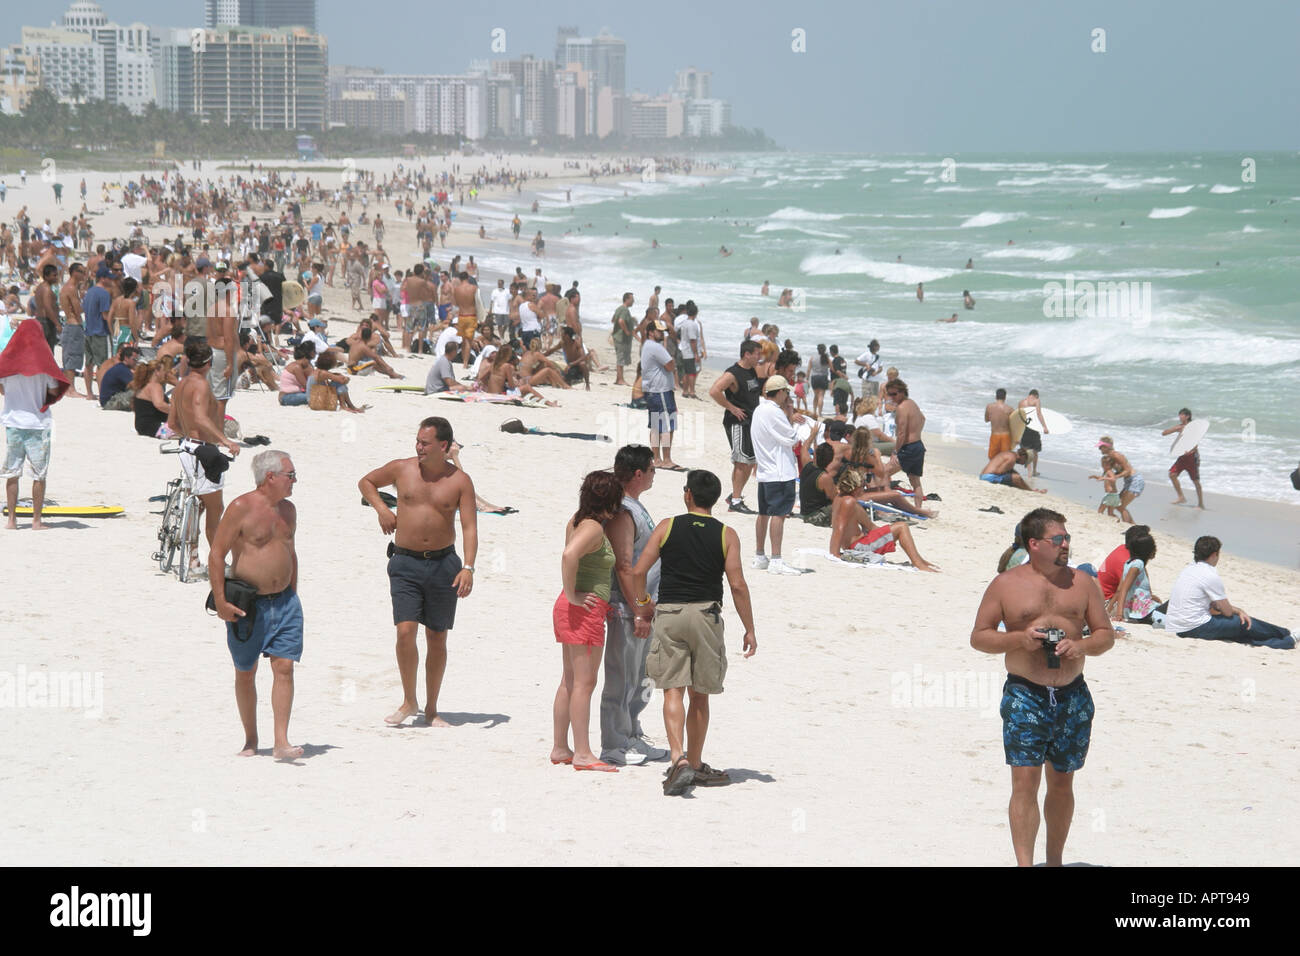 Miami Beach Florida Coast Curious Crowds Watch Rising Surf Hurricane Frances Approaches